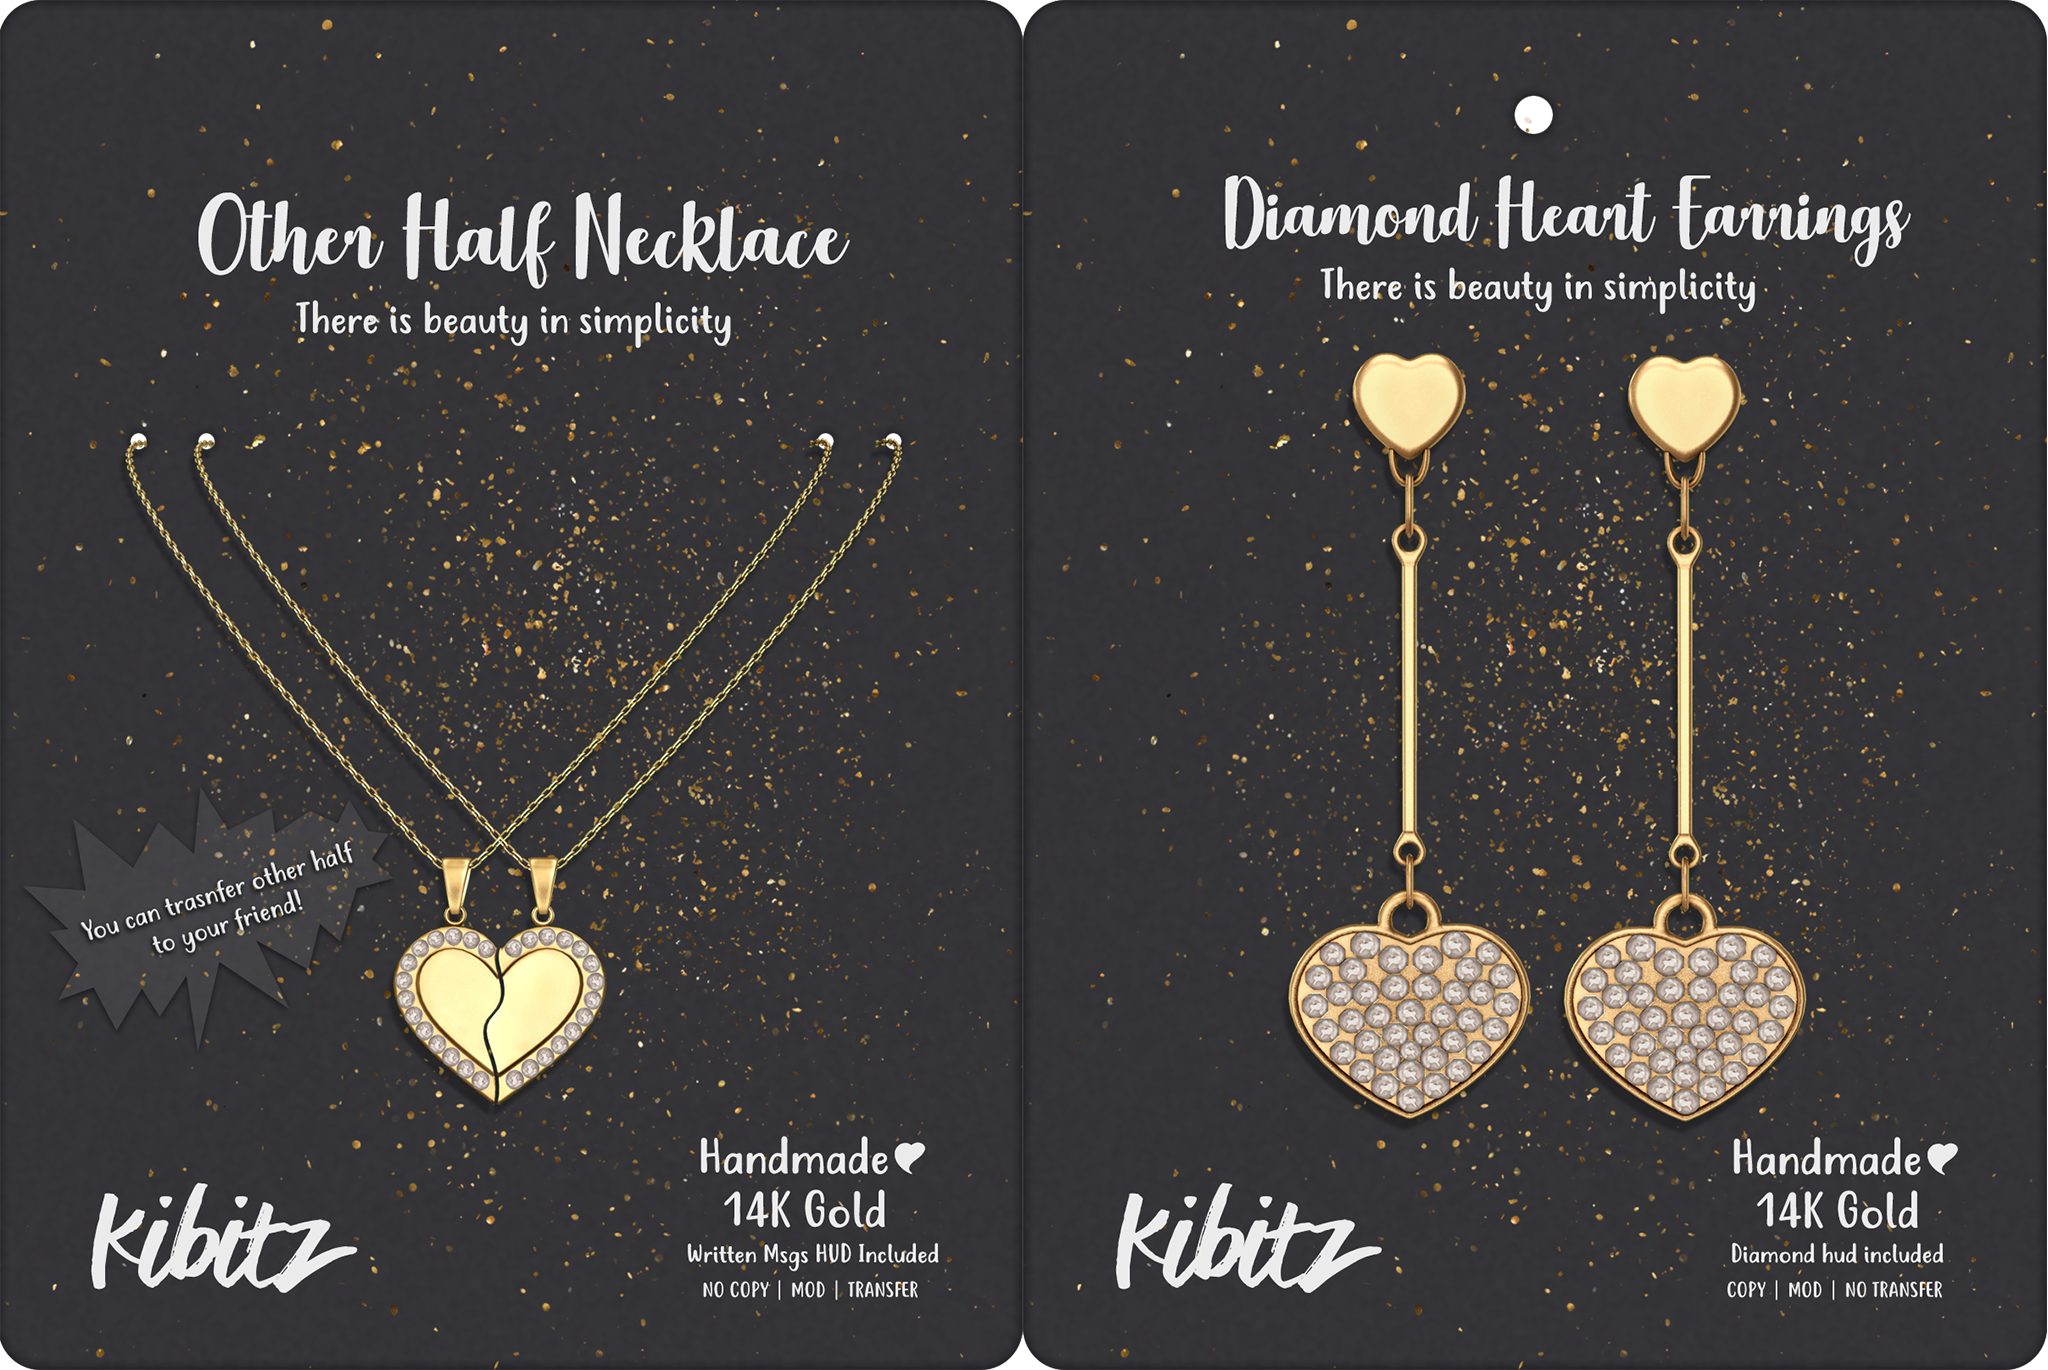 Kibitz - Earrings and Necklace.png